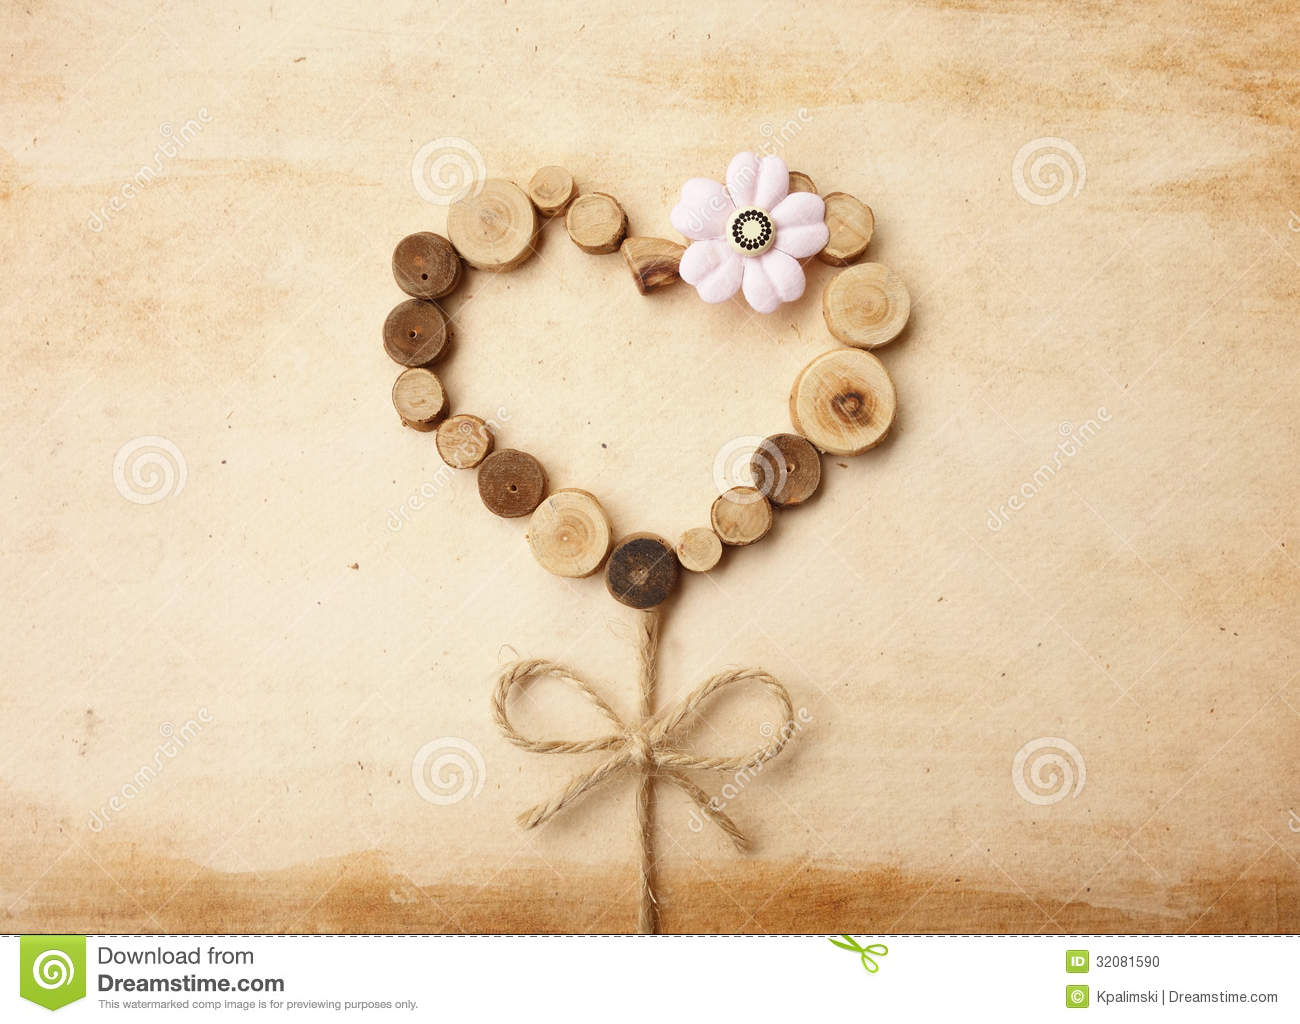 Love Tree Vintage Craft Stock Photo - Image: 32081590